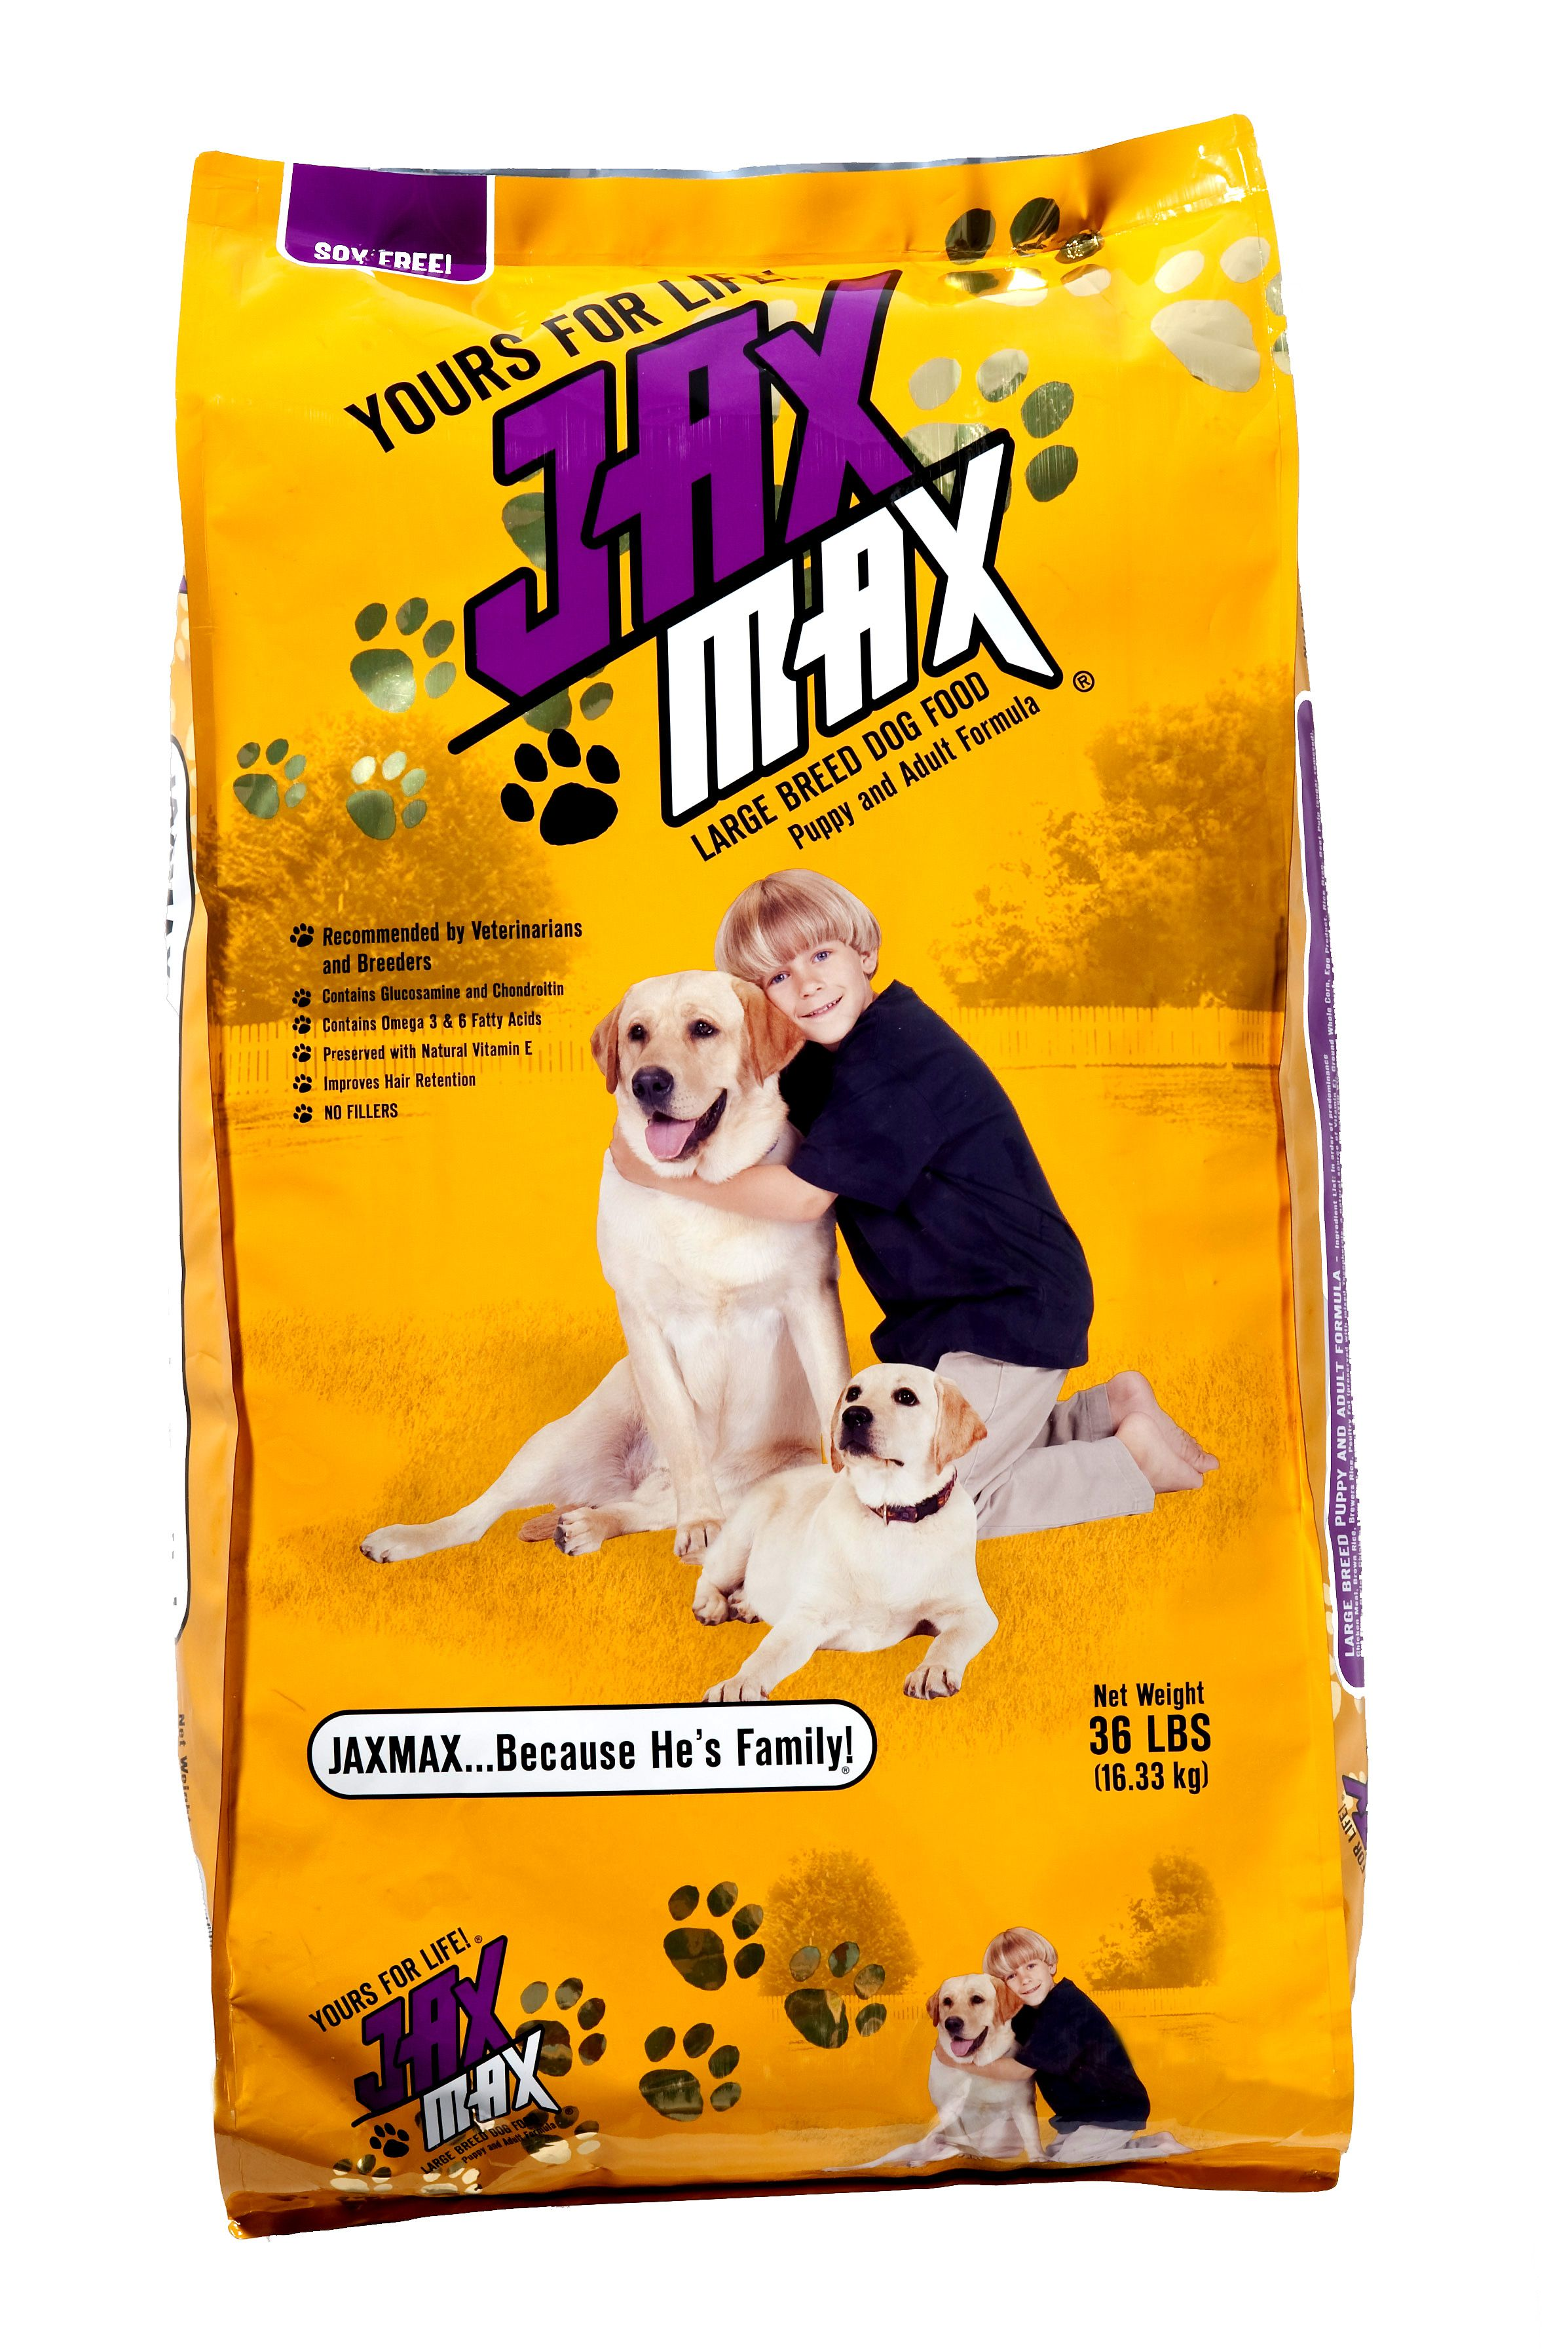 Jaxmax Dog Food Is Designed To Meet The High Demands Of An Active